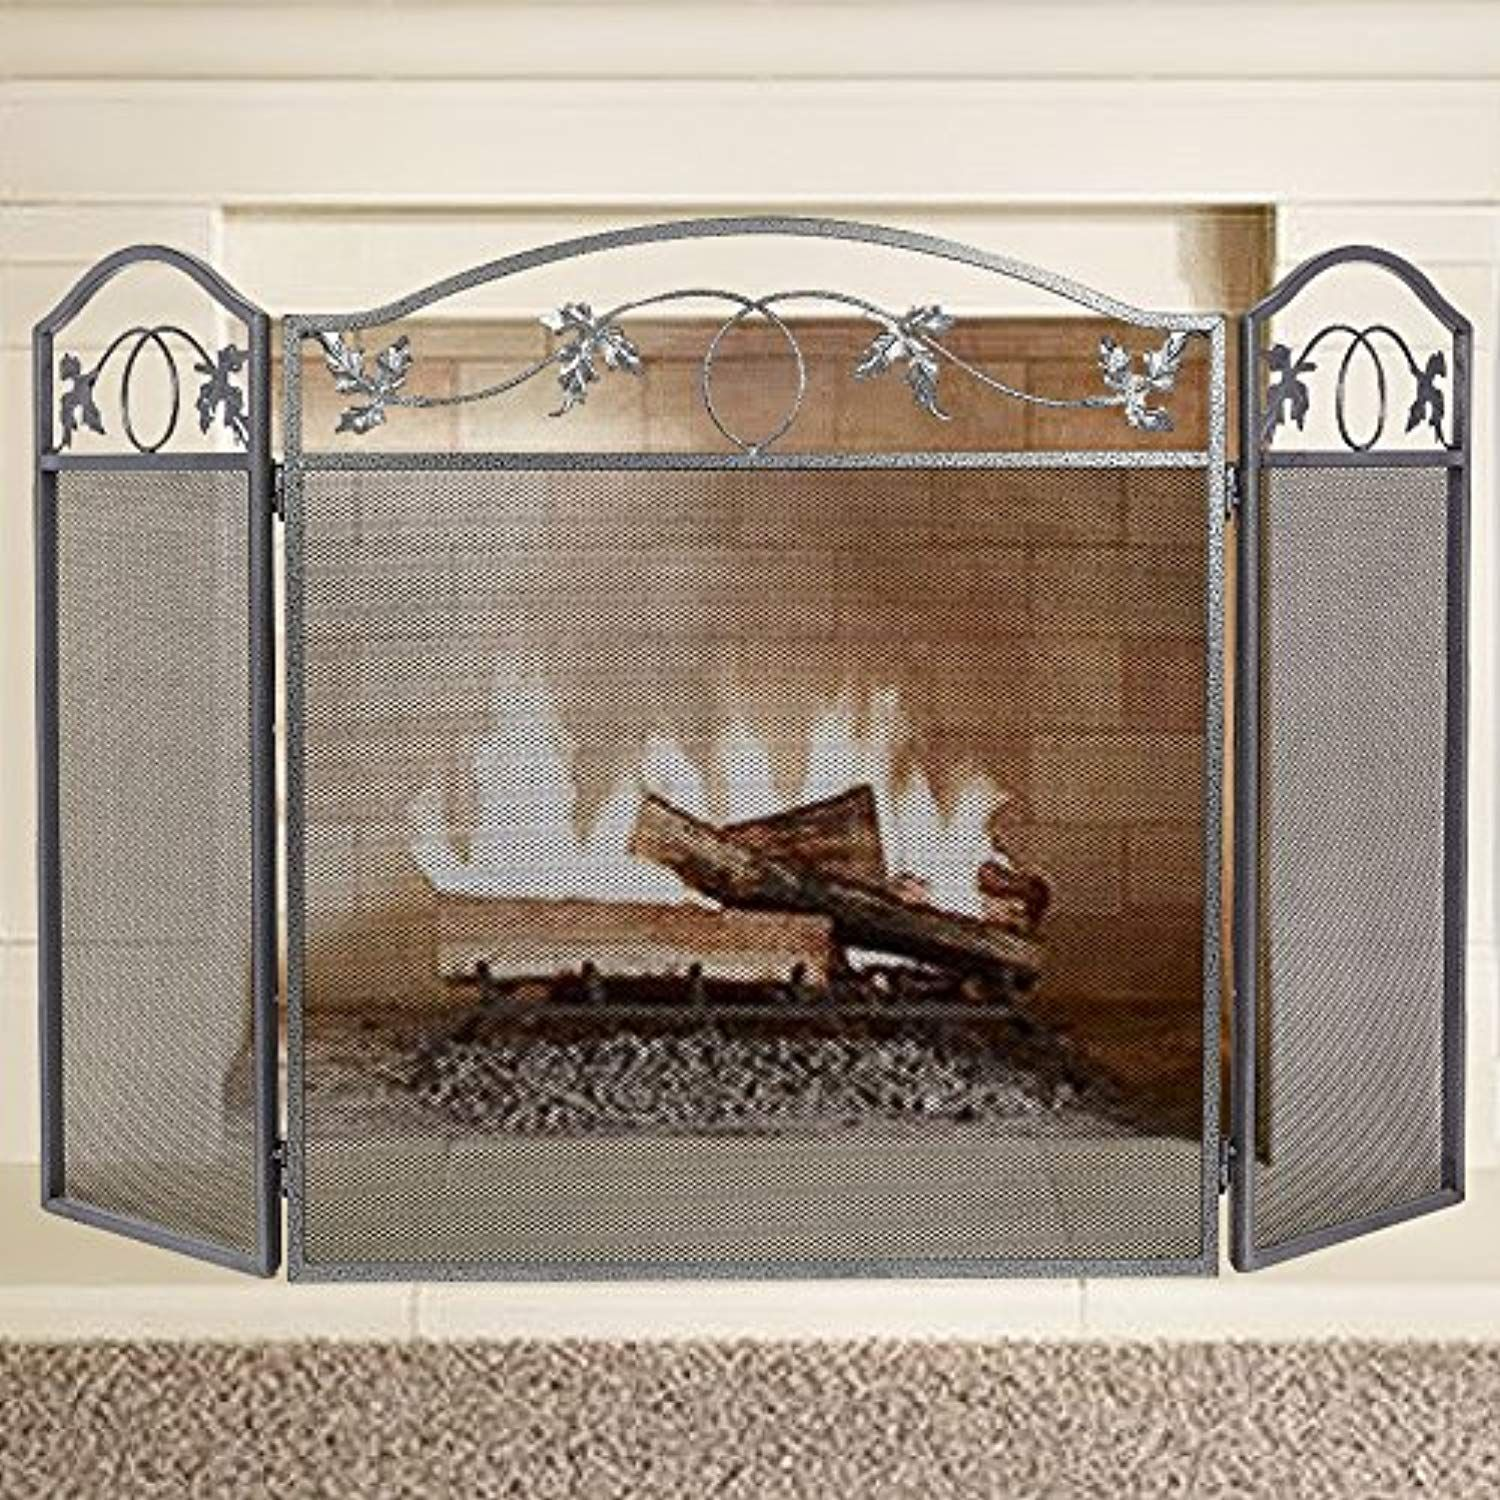 Amagabeli 3 Panel Pewter Wrought Iron Fireplace Screen Outdoor Metal Decorative Me With Images Fireplace Screens Wrought Iron Fireplace Screen Decorative Fireplace Screens